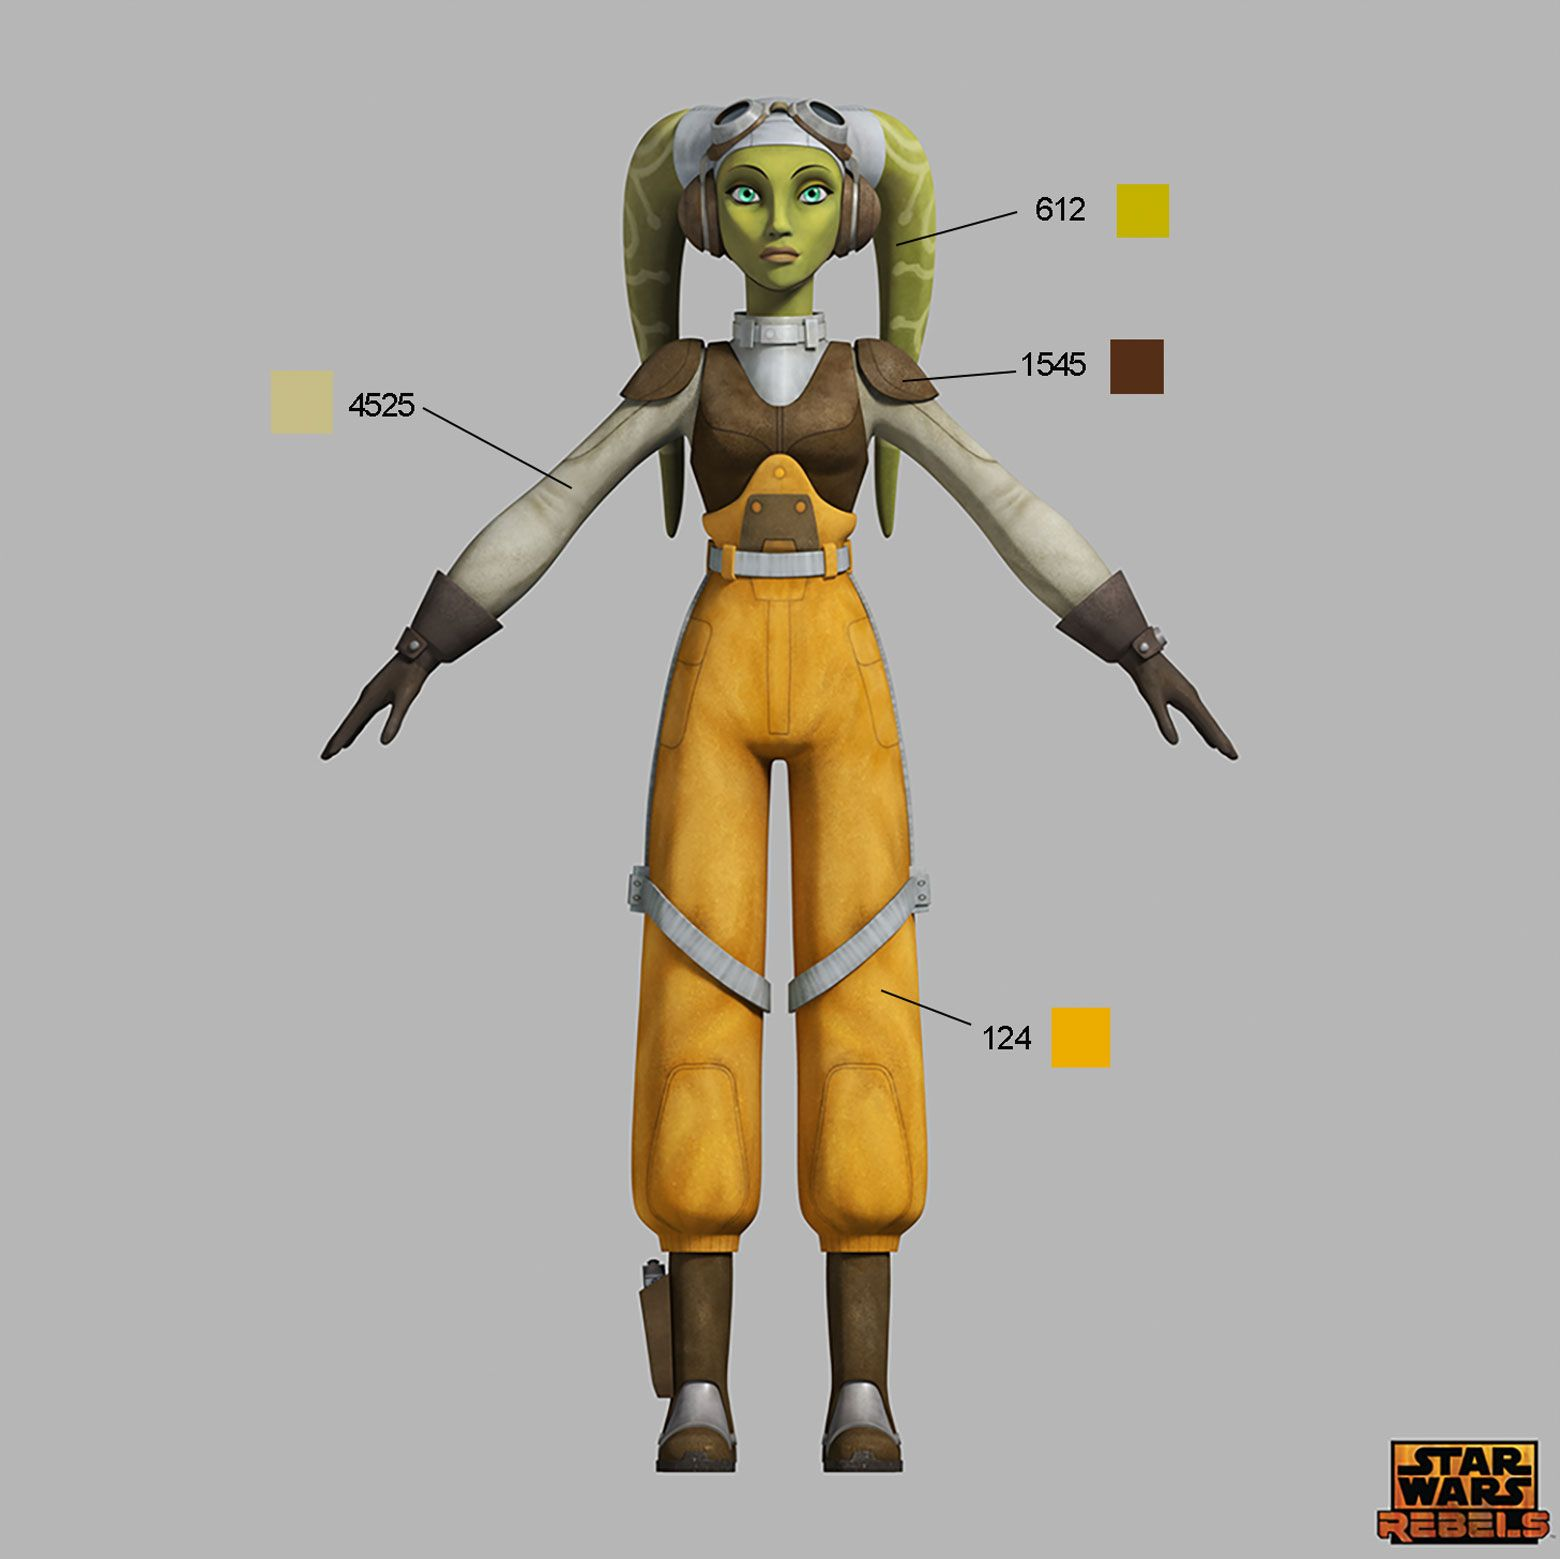 Star Wars Rebels Costume Color Guide for Padawans, Twi'leks, and ...